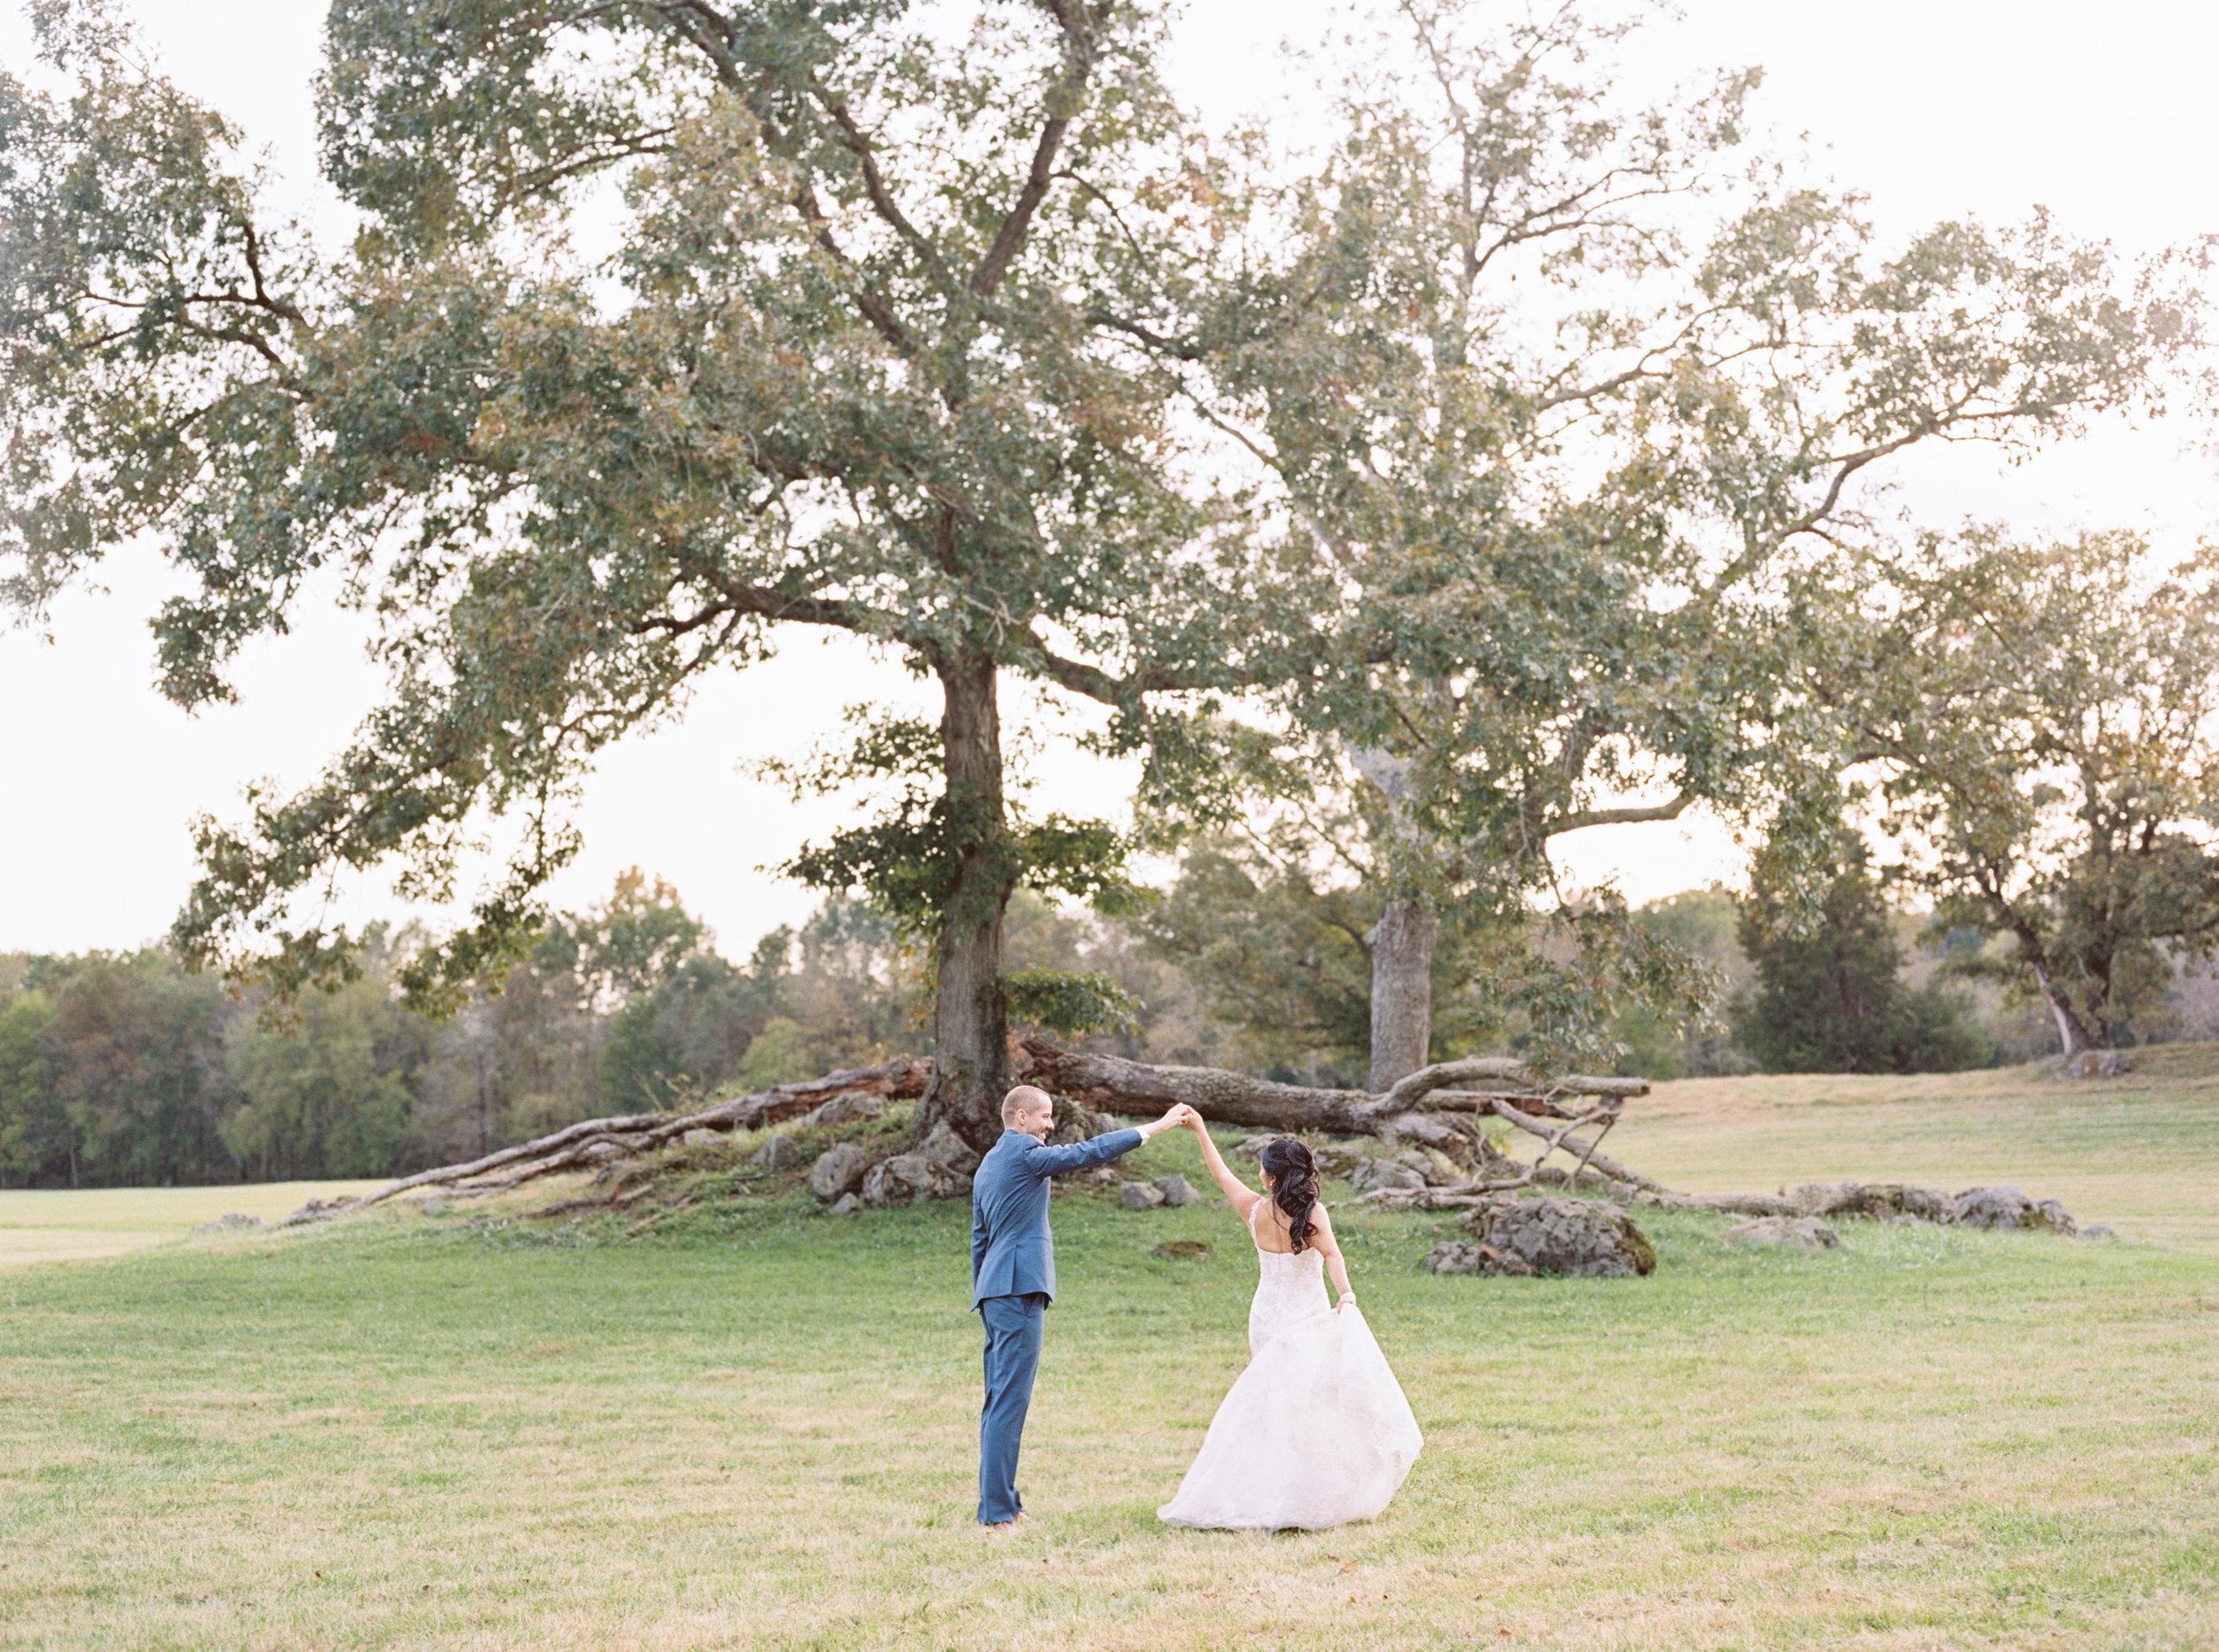 Click  here  to see more of Anna & Michael's cozy and chic Natchez, MS wedding.